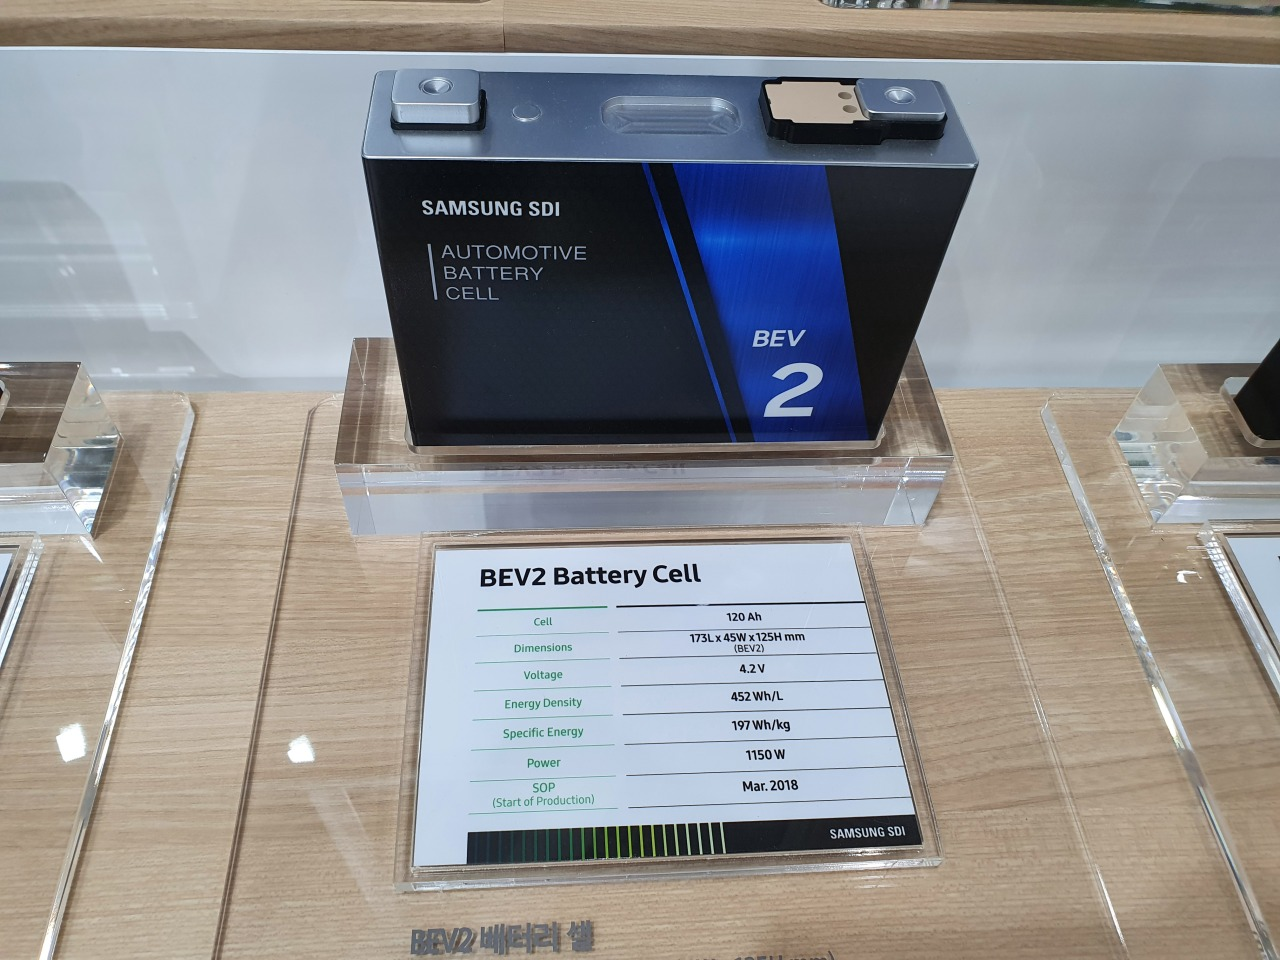 Samsung SDI's prismatic battery cell for electric vehicles (Kim Byung-wook/The Korea Herald)